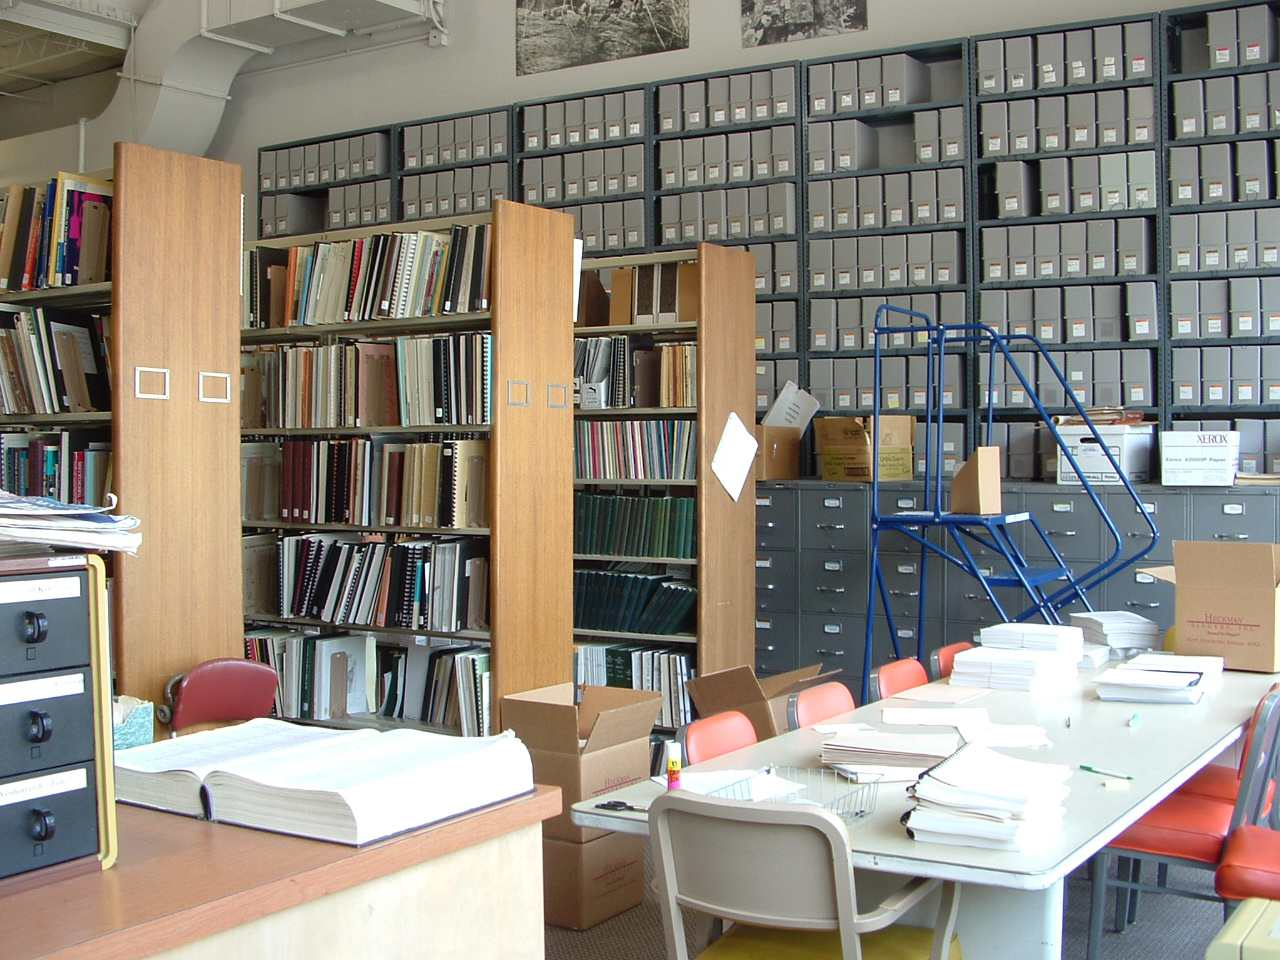 Seventy percent of all archaeology is done in the library (Indiana Jones)